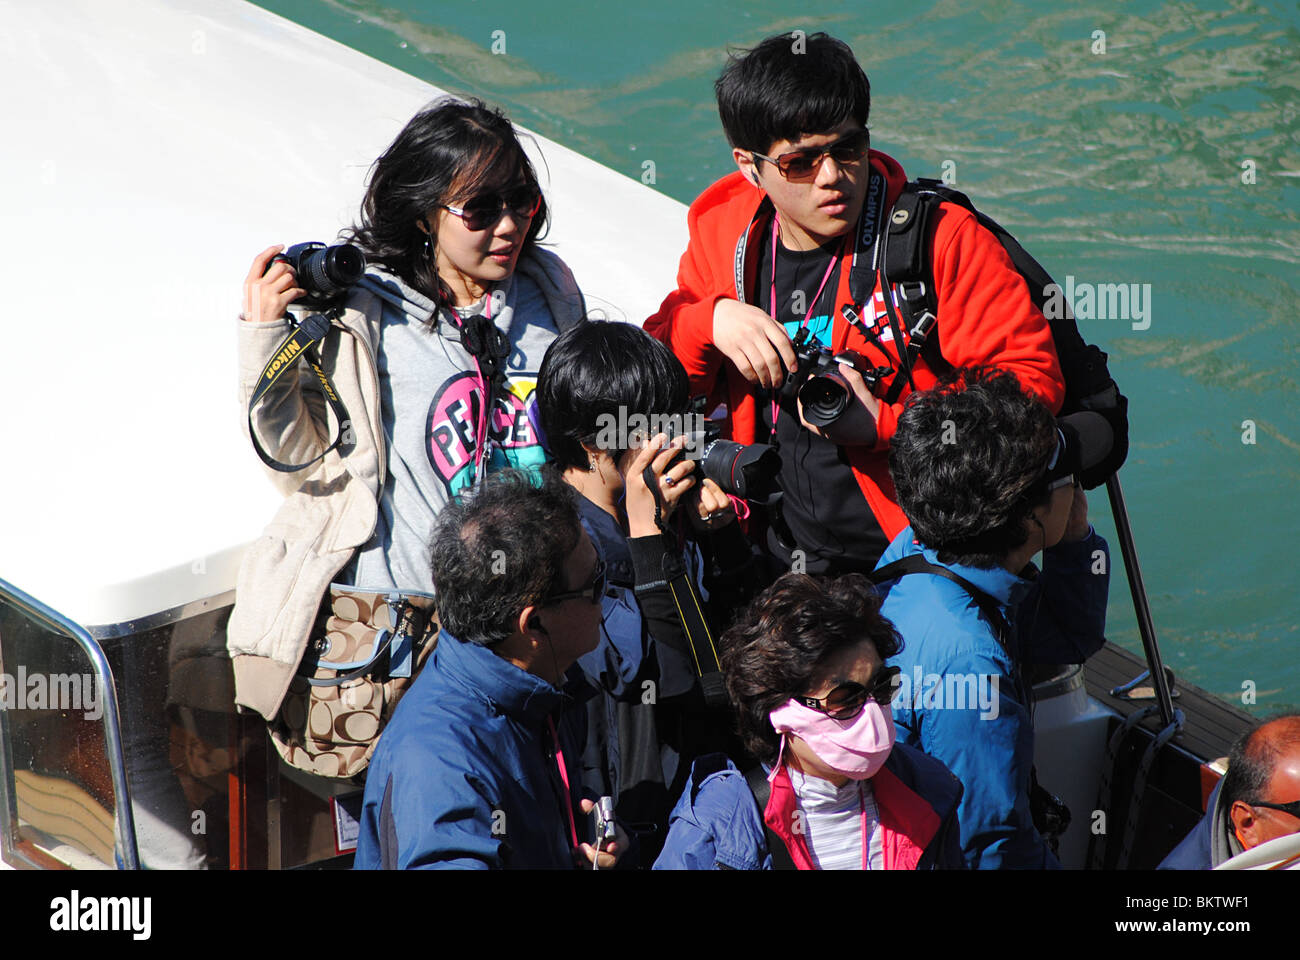 Asian tourists with cameras, Grand Canal, Venice, Italy - Stock Image